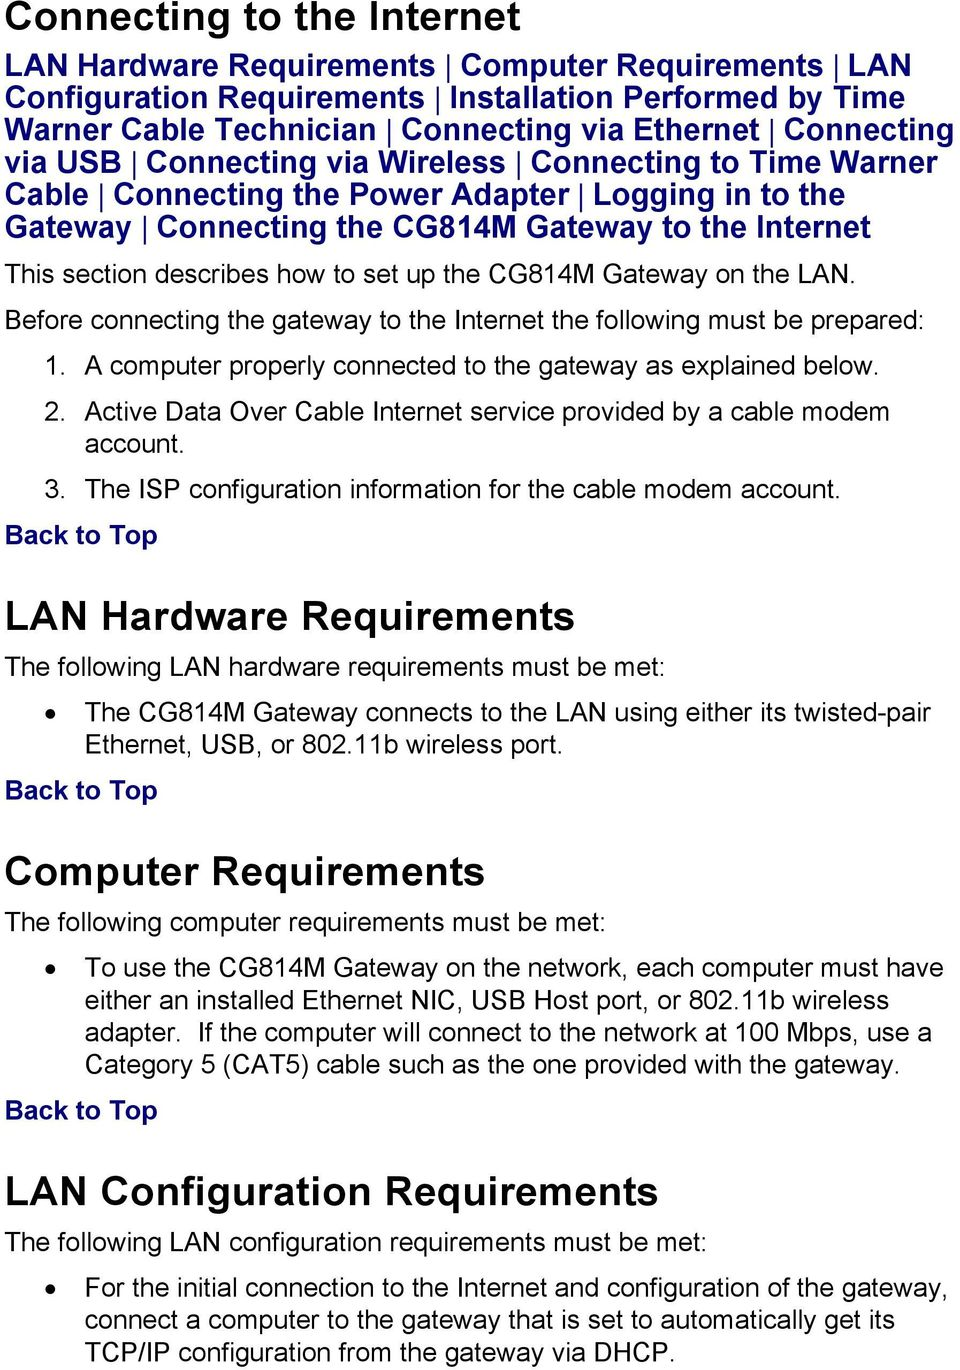 the CG814M Gateway on the LAN. Before connecting the gateway to the Internet the following must be prepared: 1. A computer properly connected to the gateway as explained below. 2.